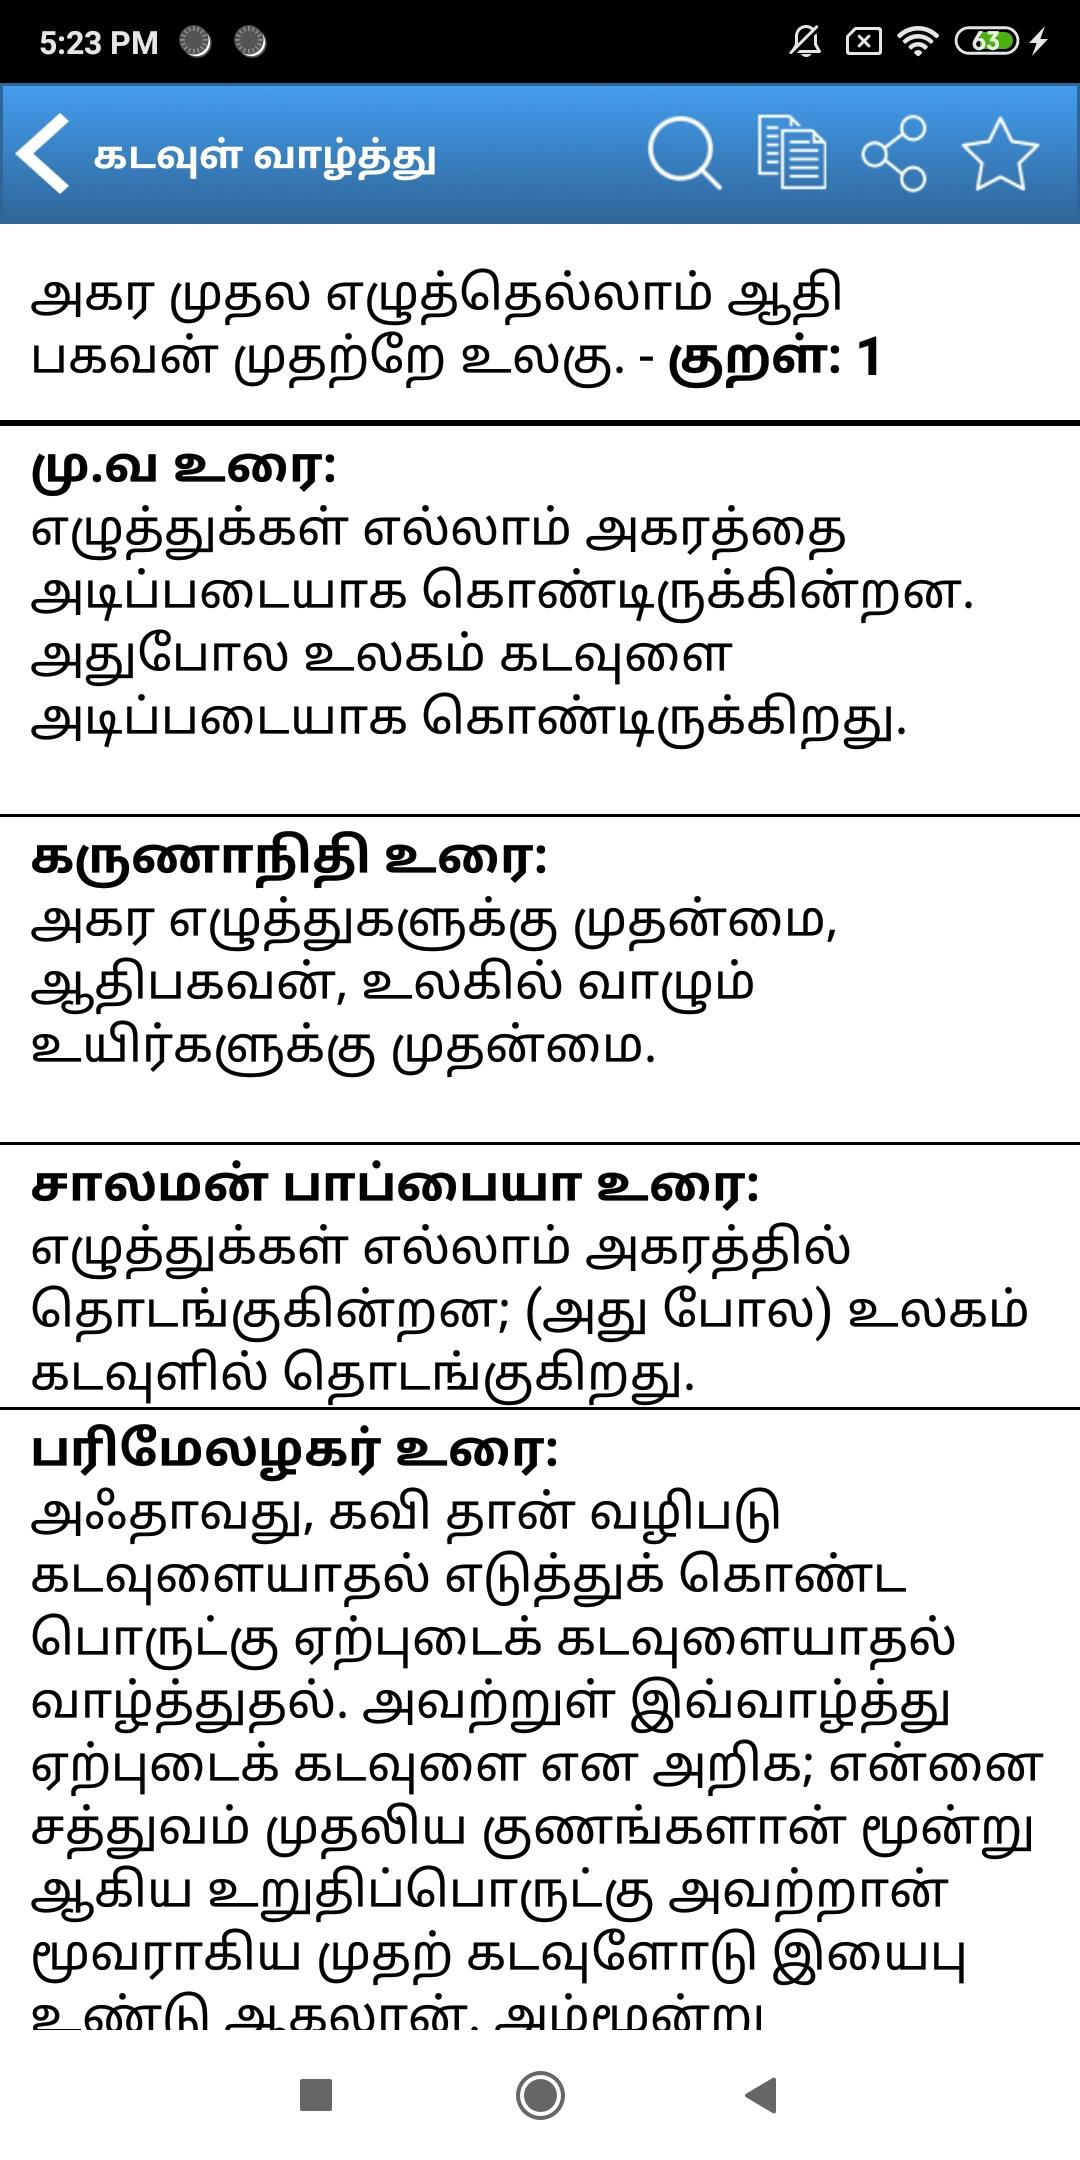 Thirukkural With Meanings - திருக்குறள் screenshot 7